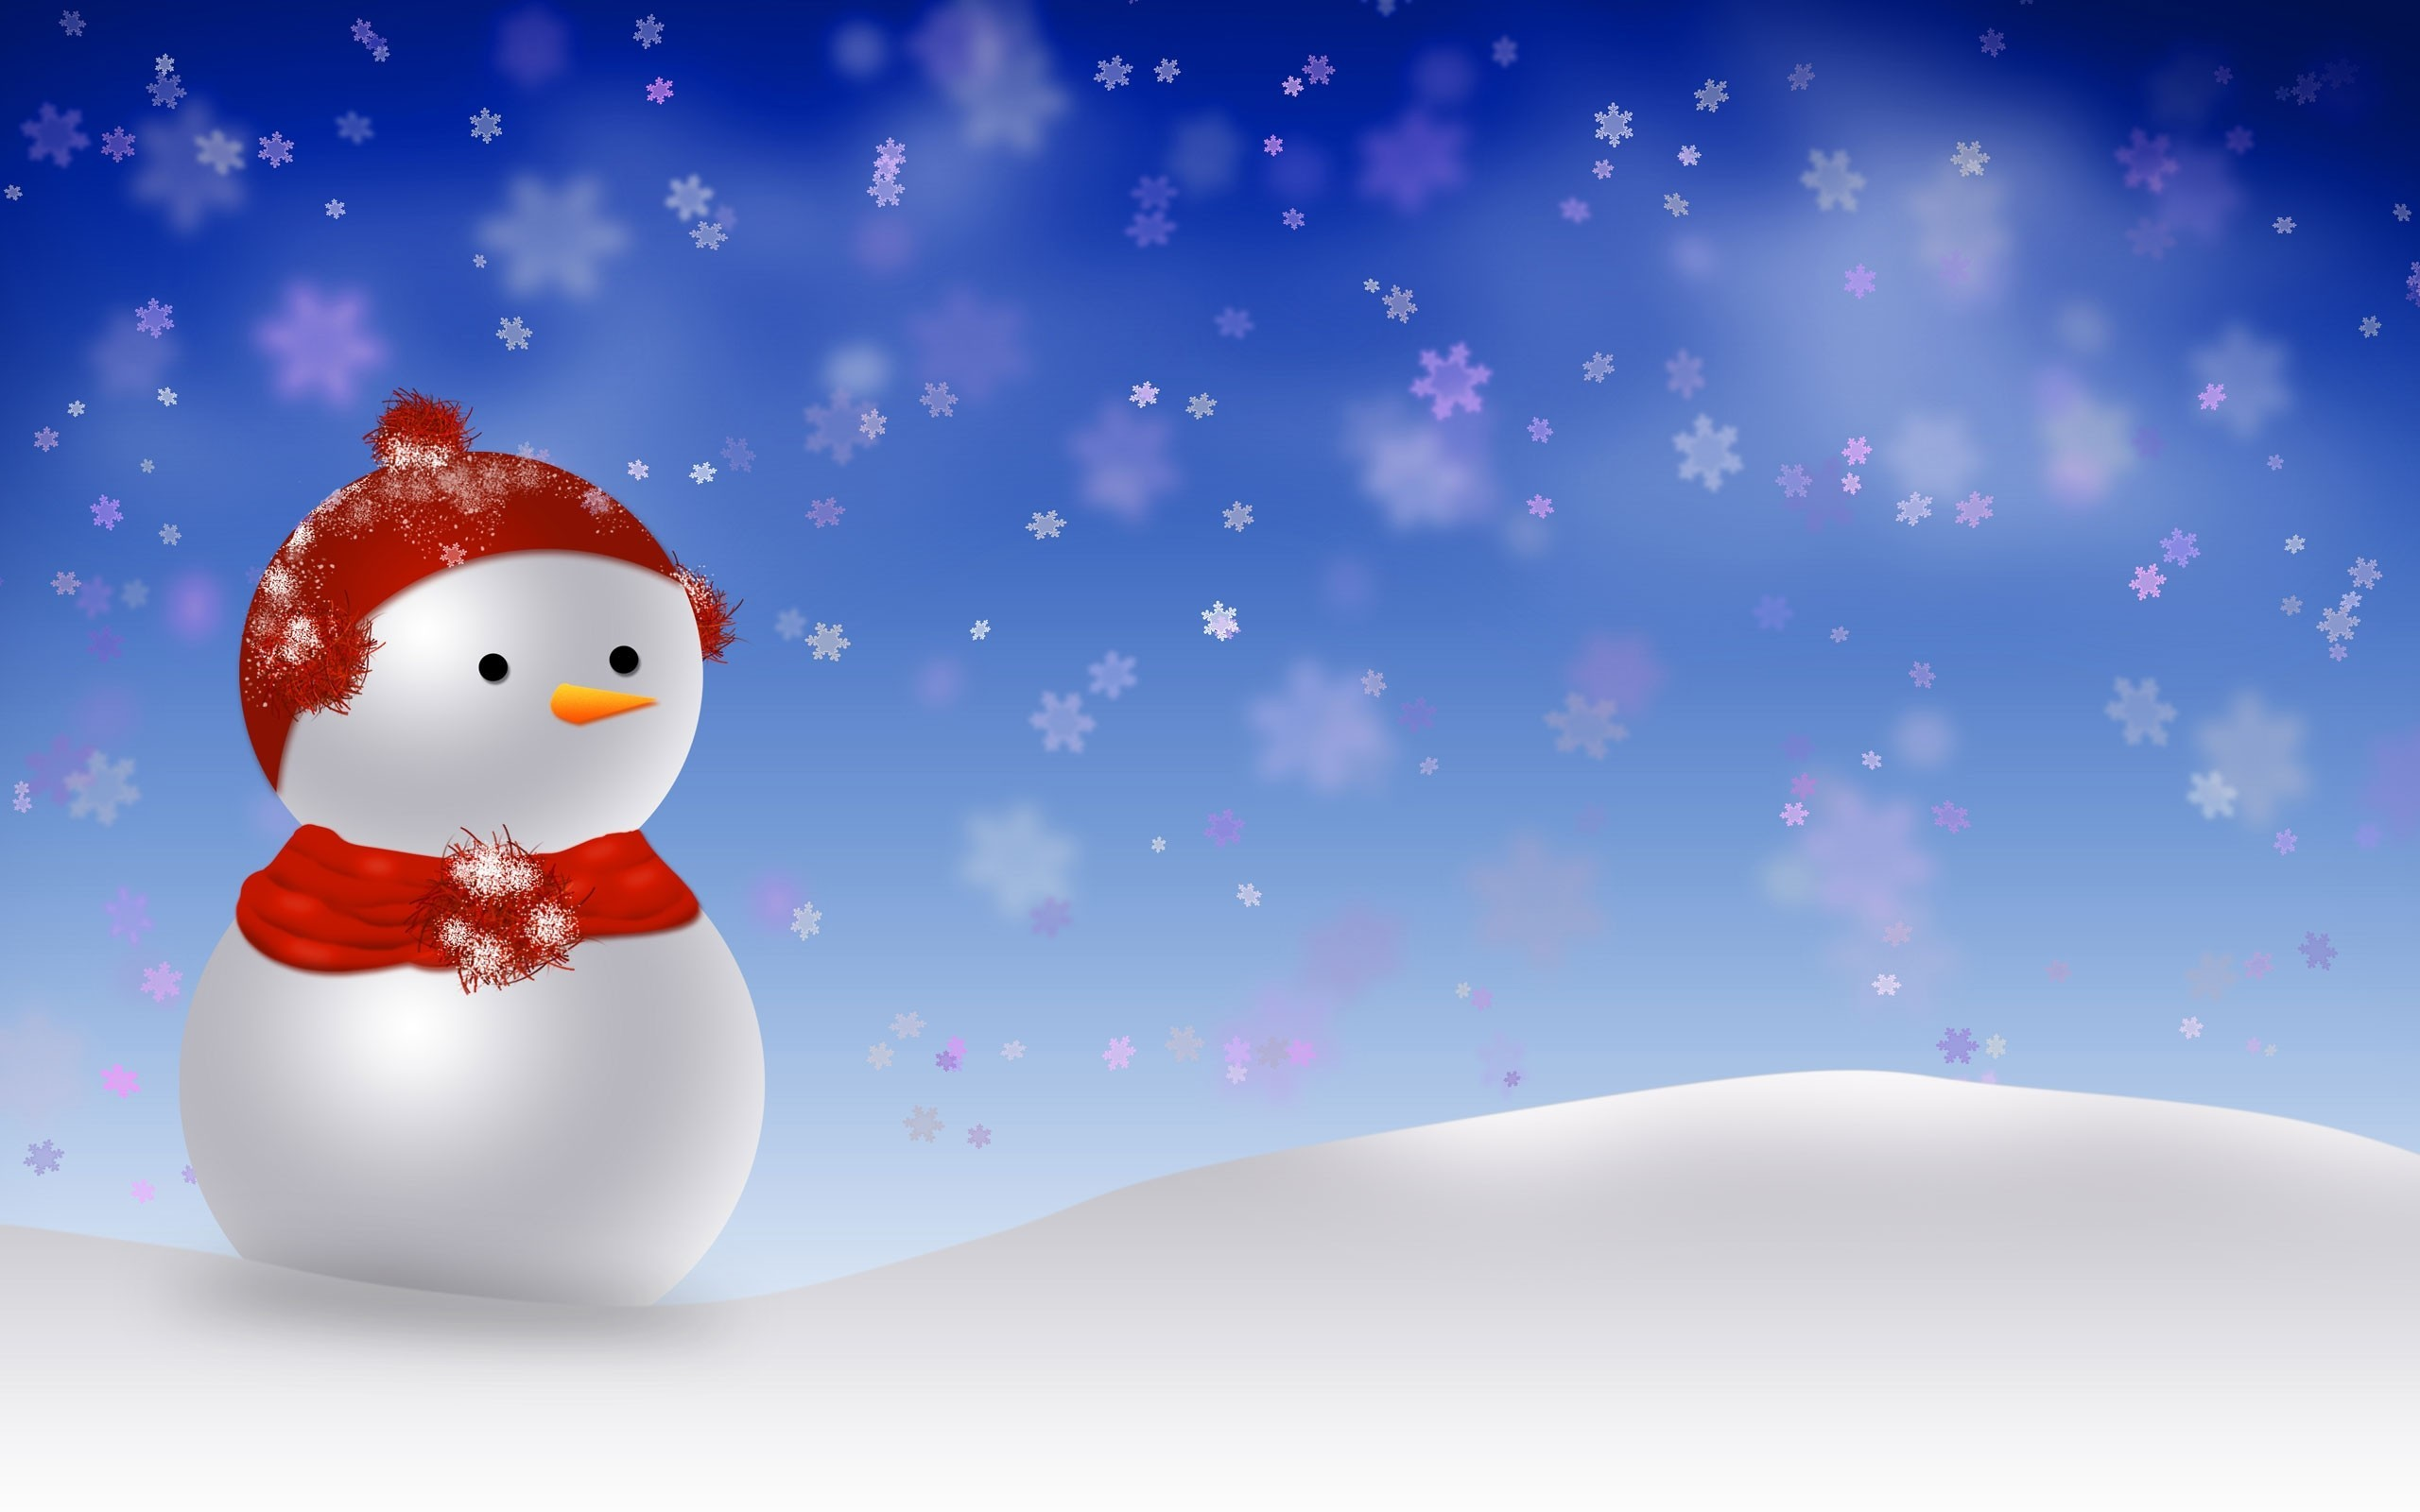 Animated-christmas-wallpapers-free-download-16.jpg (800×